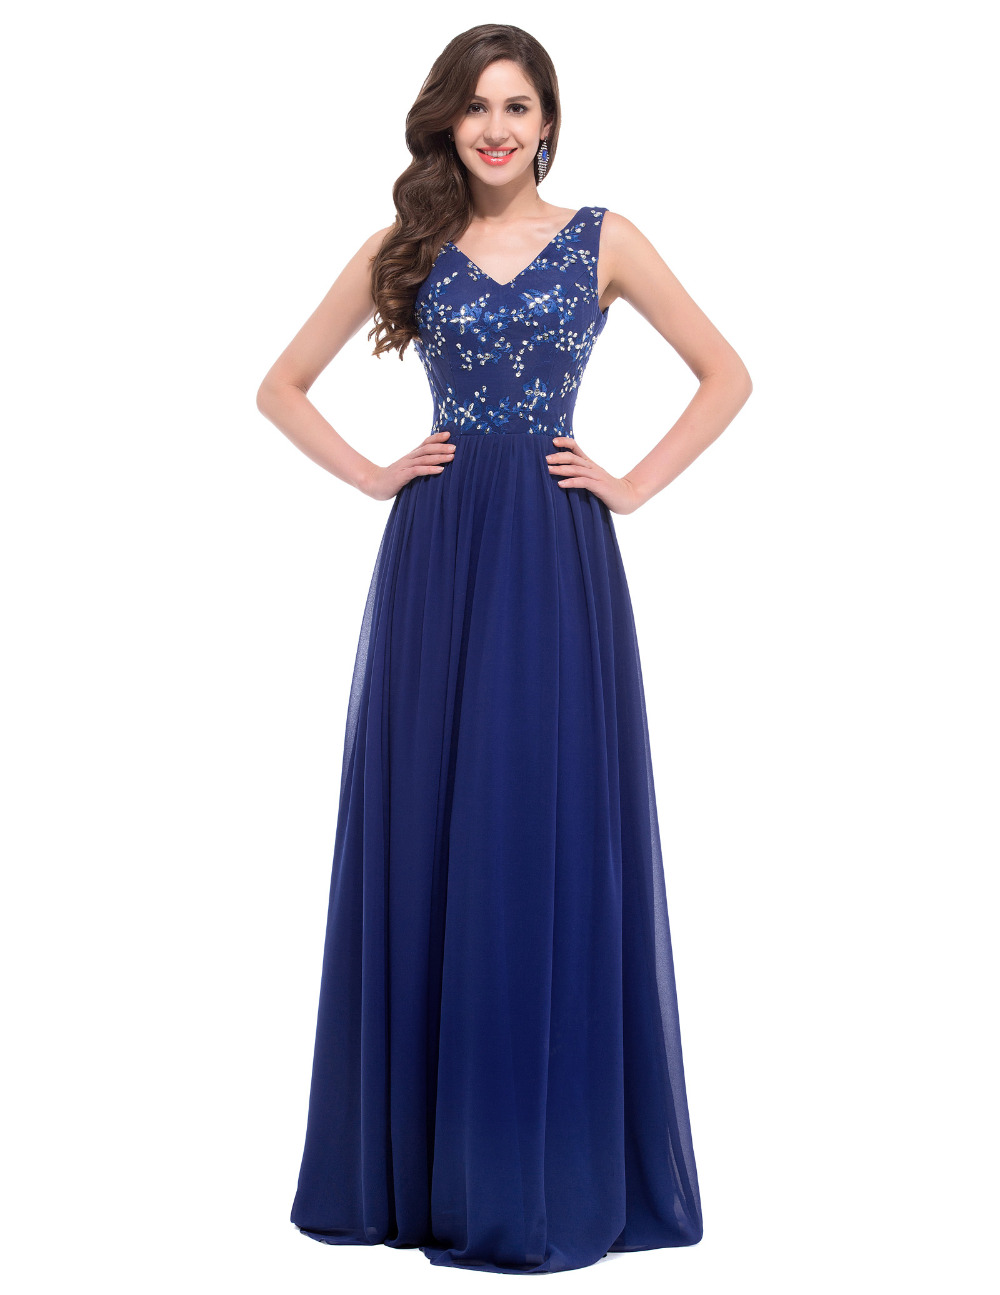 Cheap wedding guest dresses usa bridesmaid dresses for Cheap wedding dresses online usa